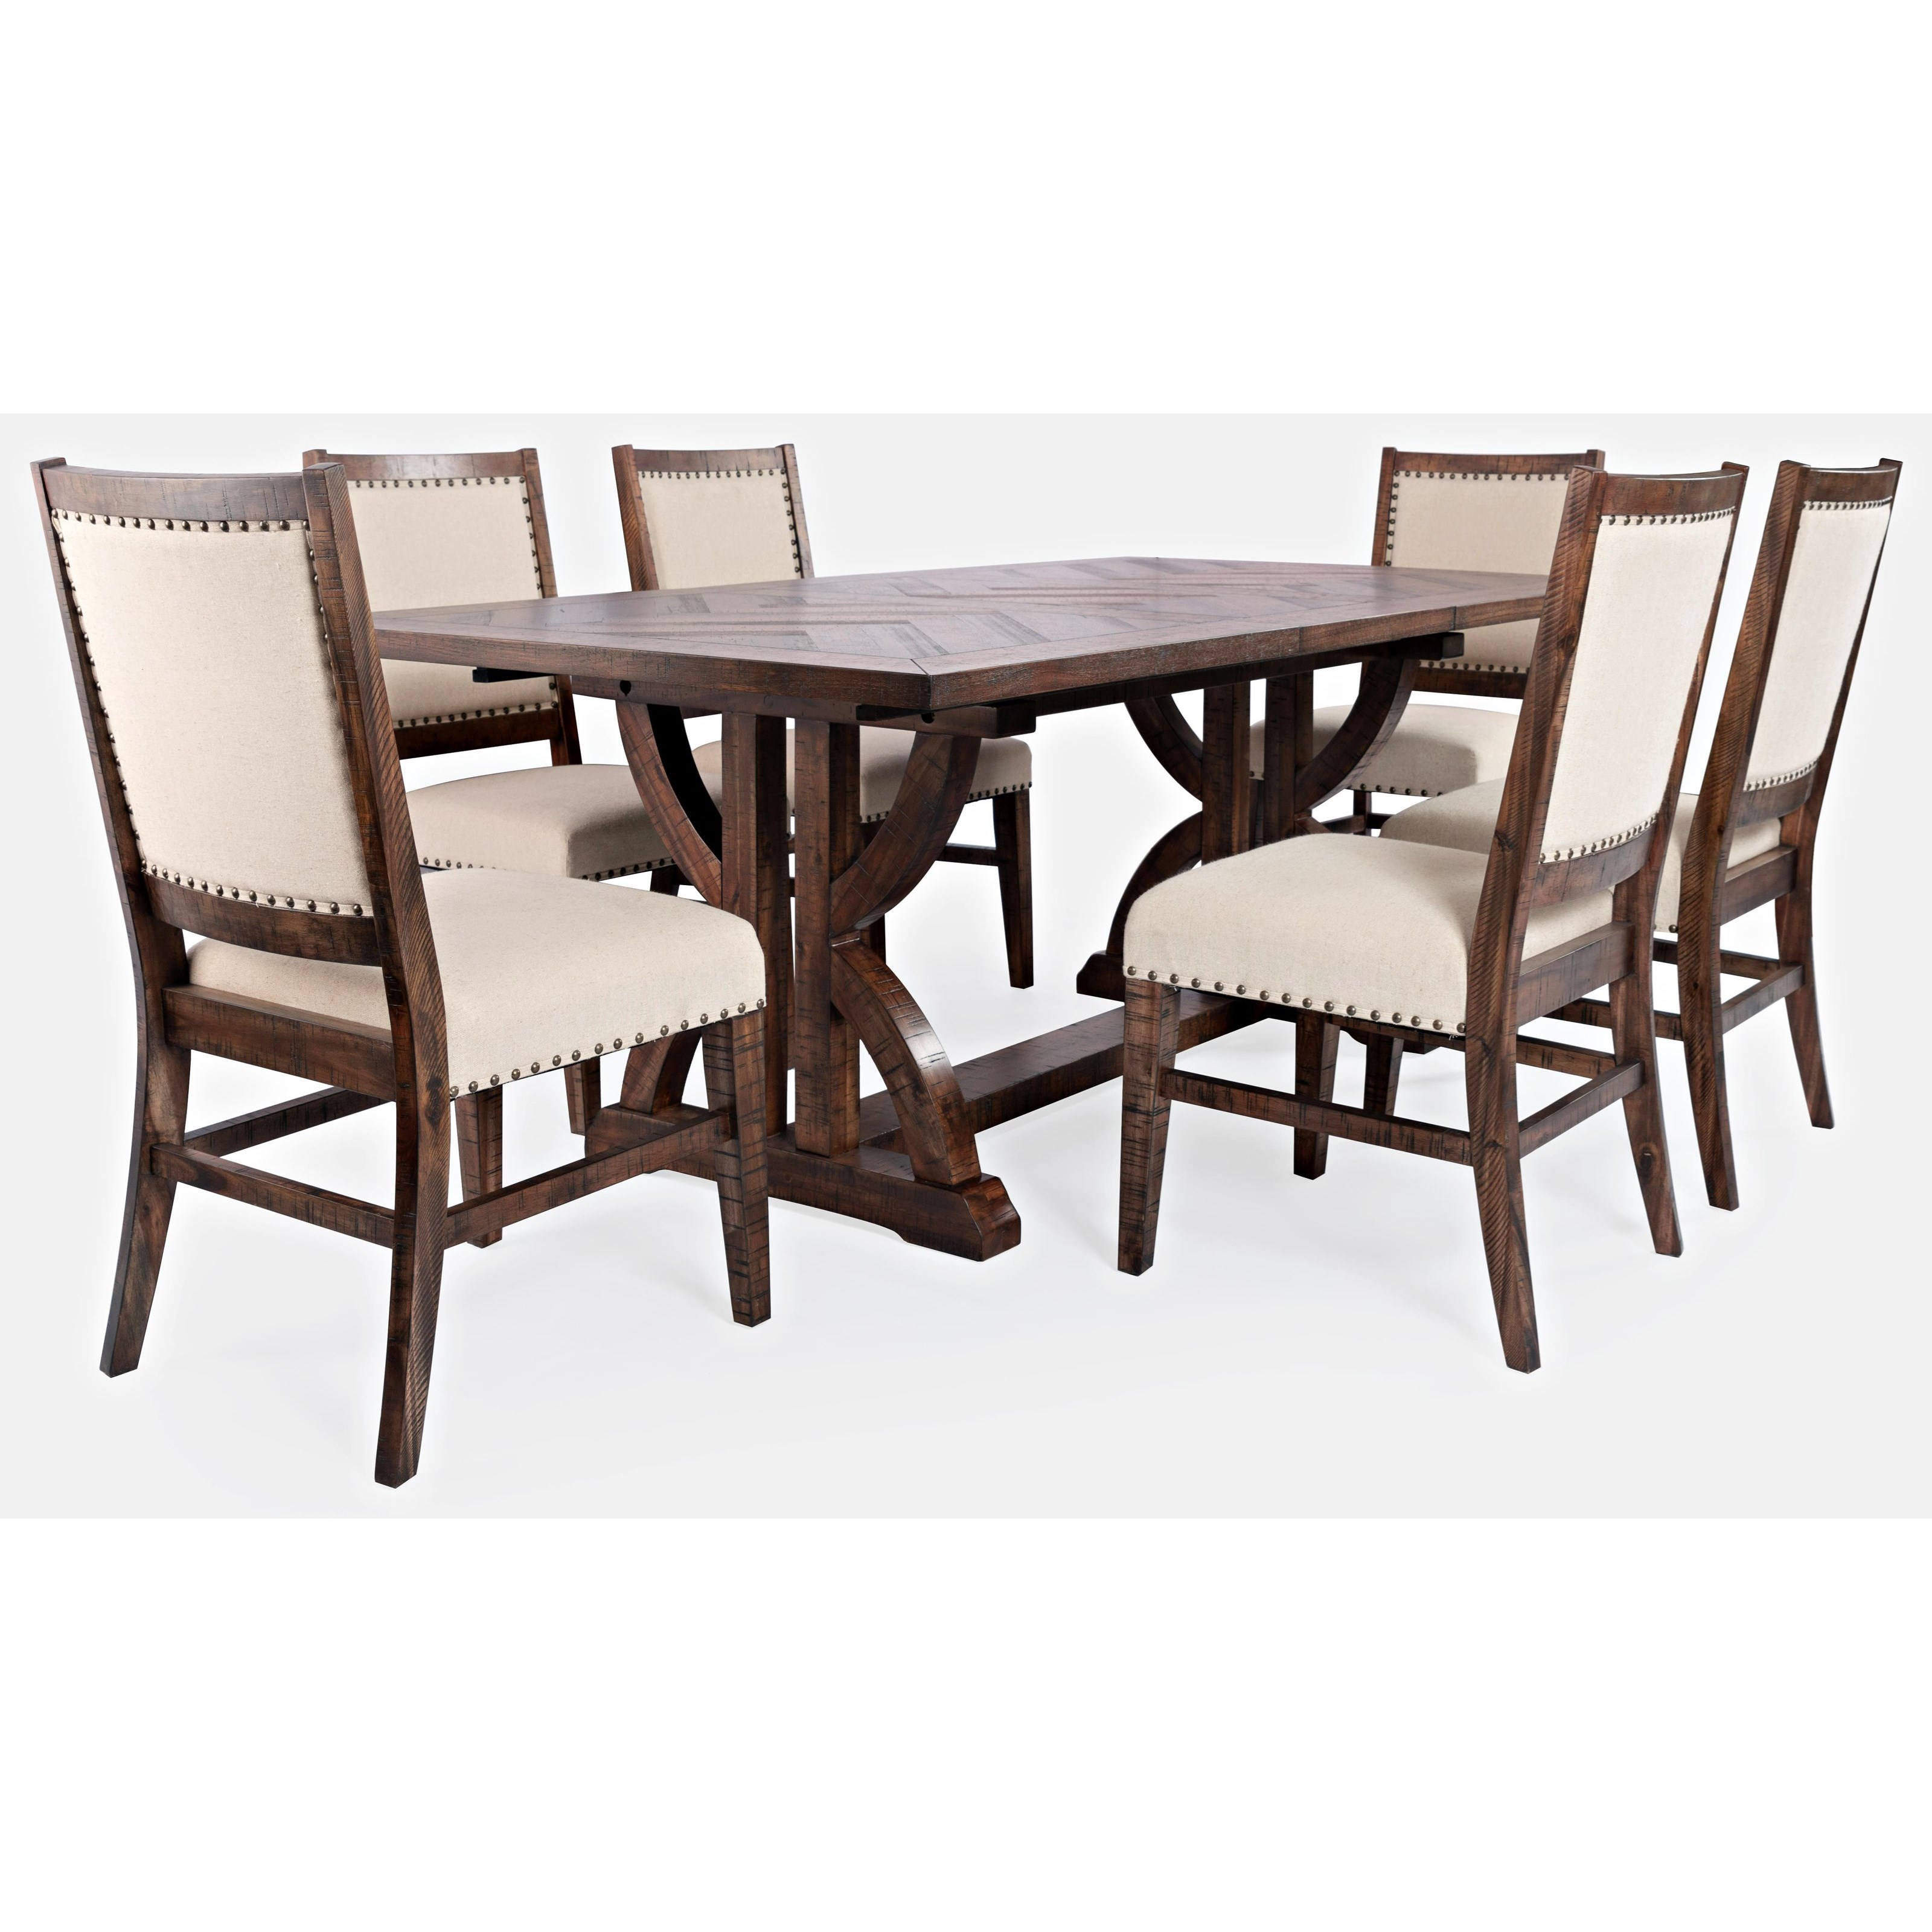 Fairview 7-Piece Dining Table and Chair Set by Jofran at Jofran